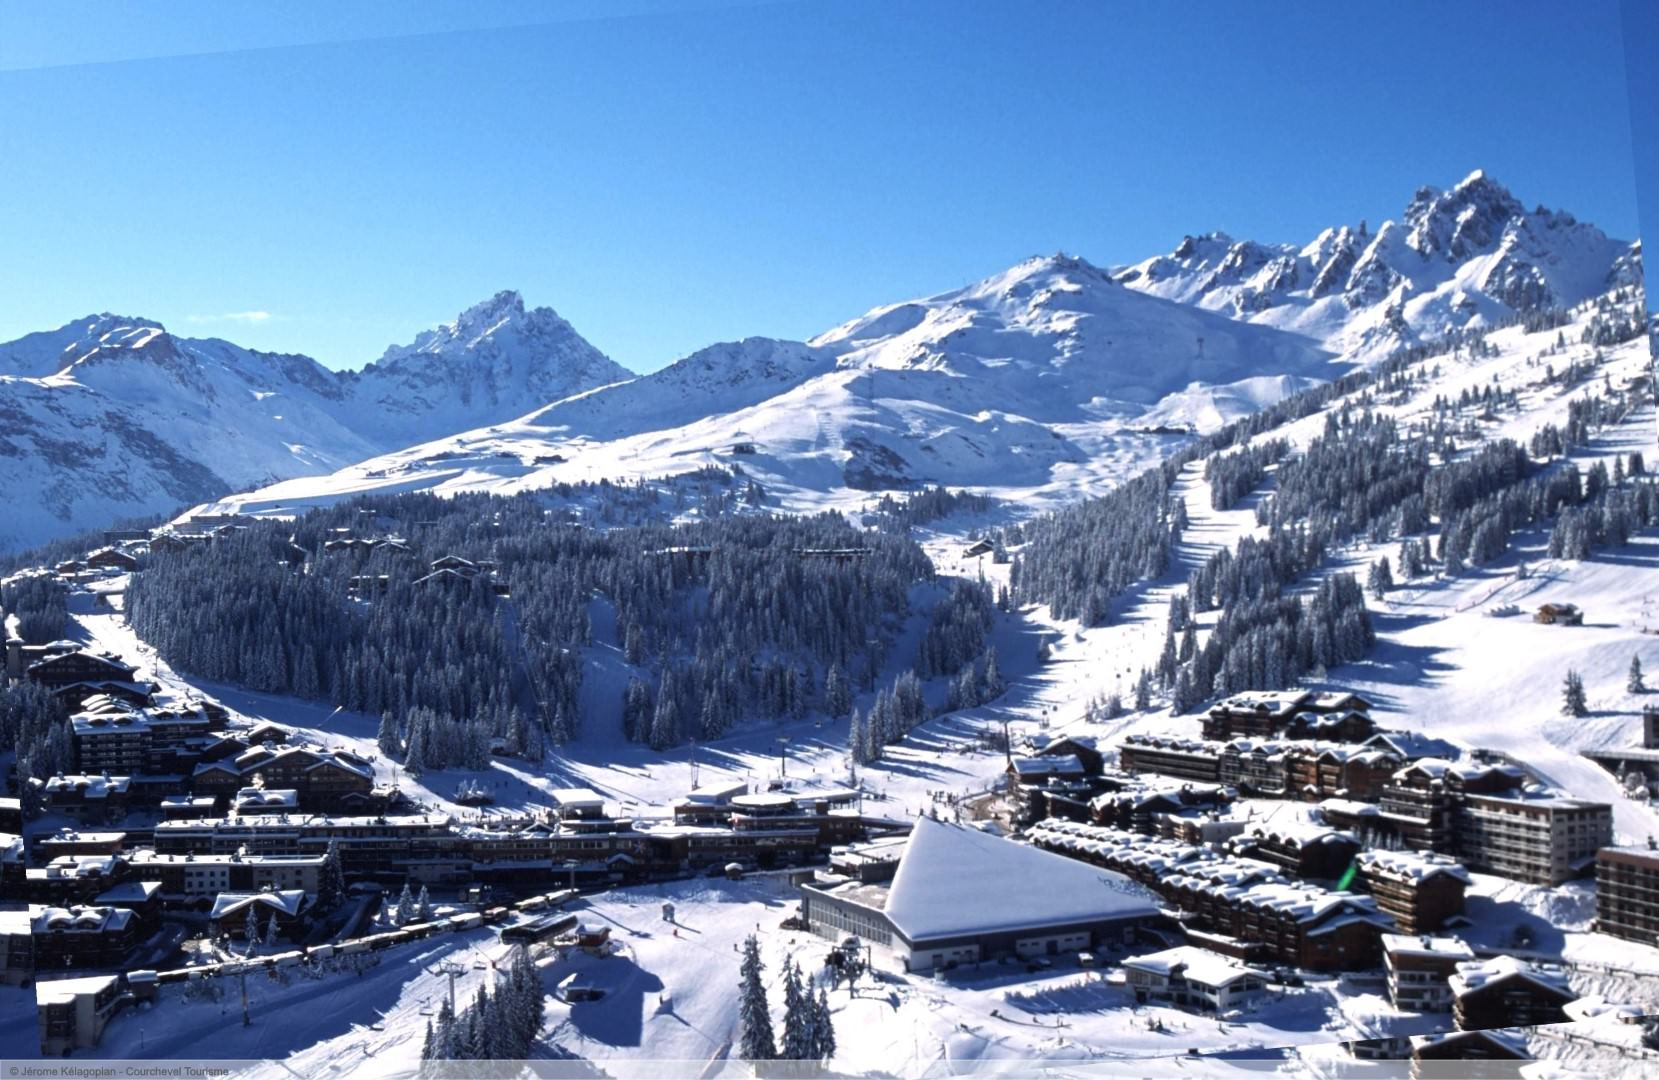 wintersport en aanbiedingen in Courchevel